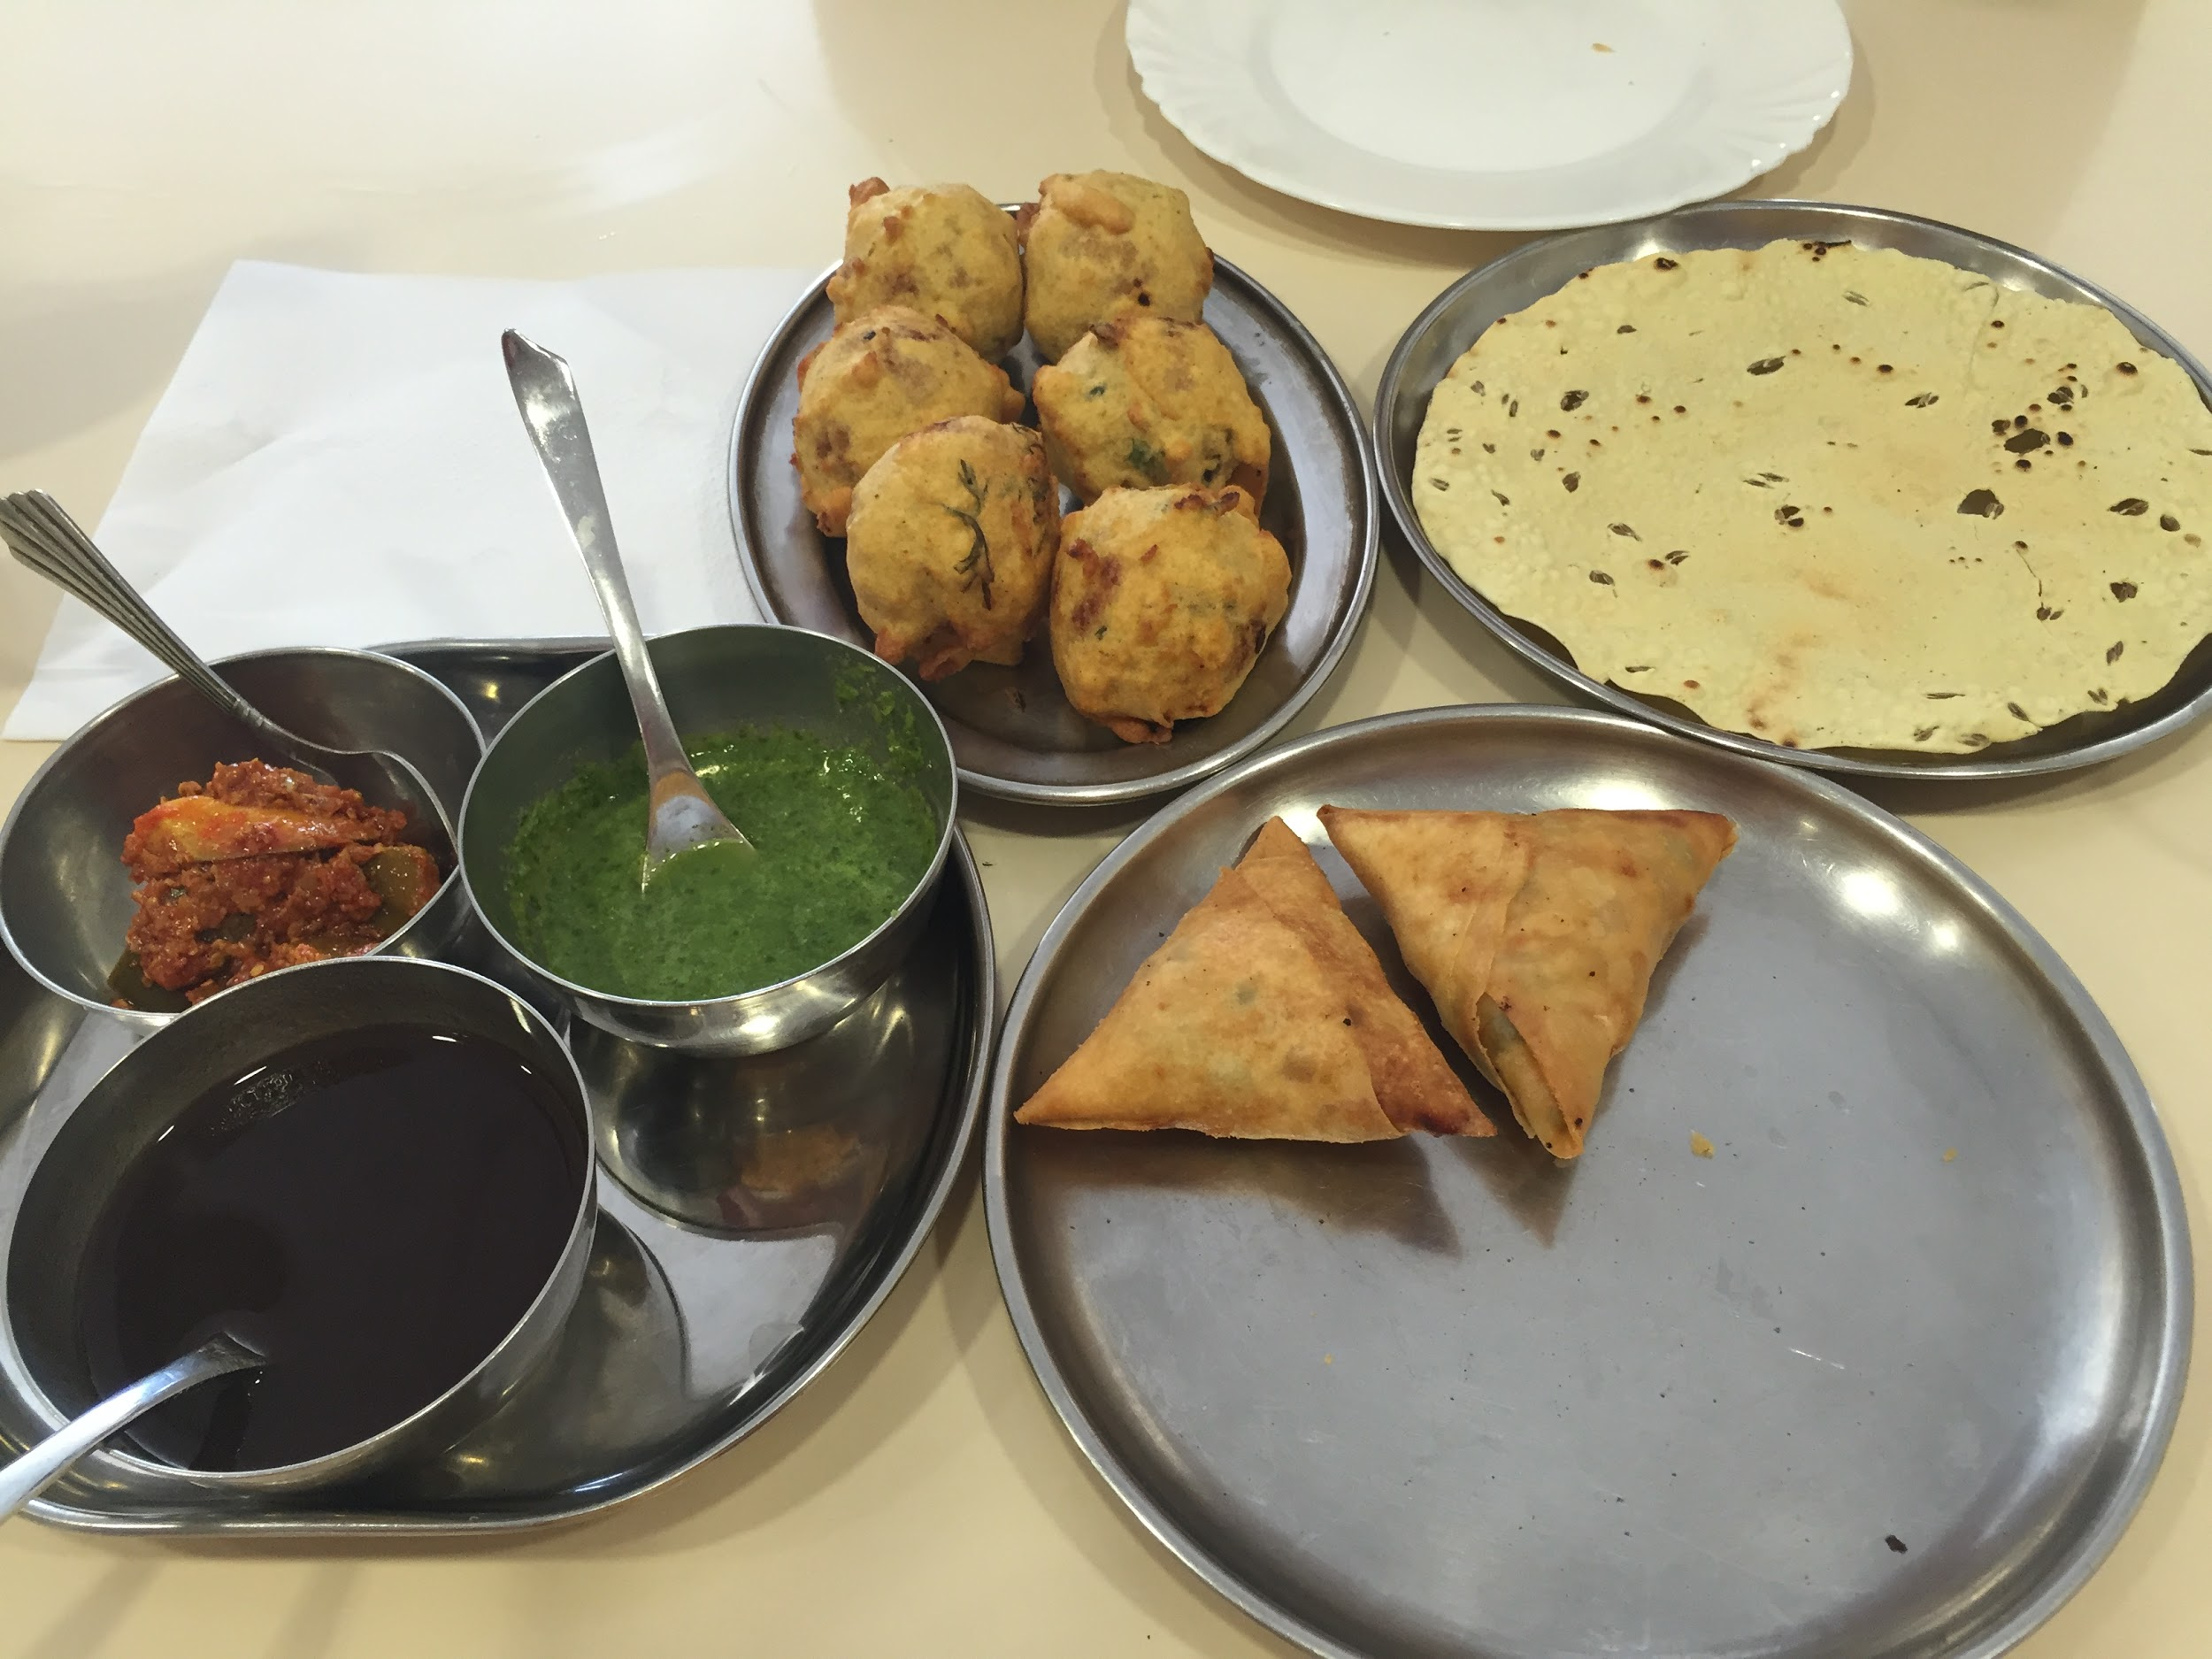 Pictures of curries and dips with spoons sticking out of them with naan on a table